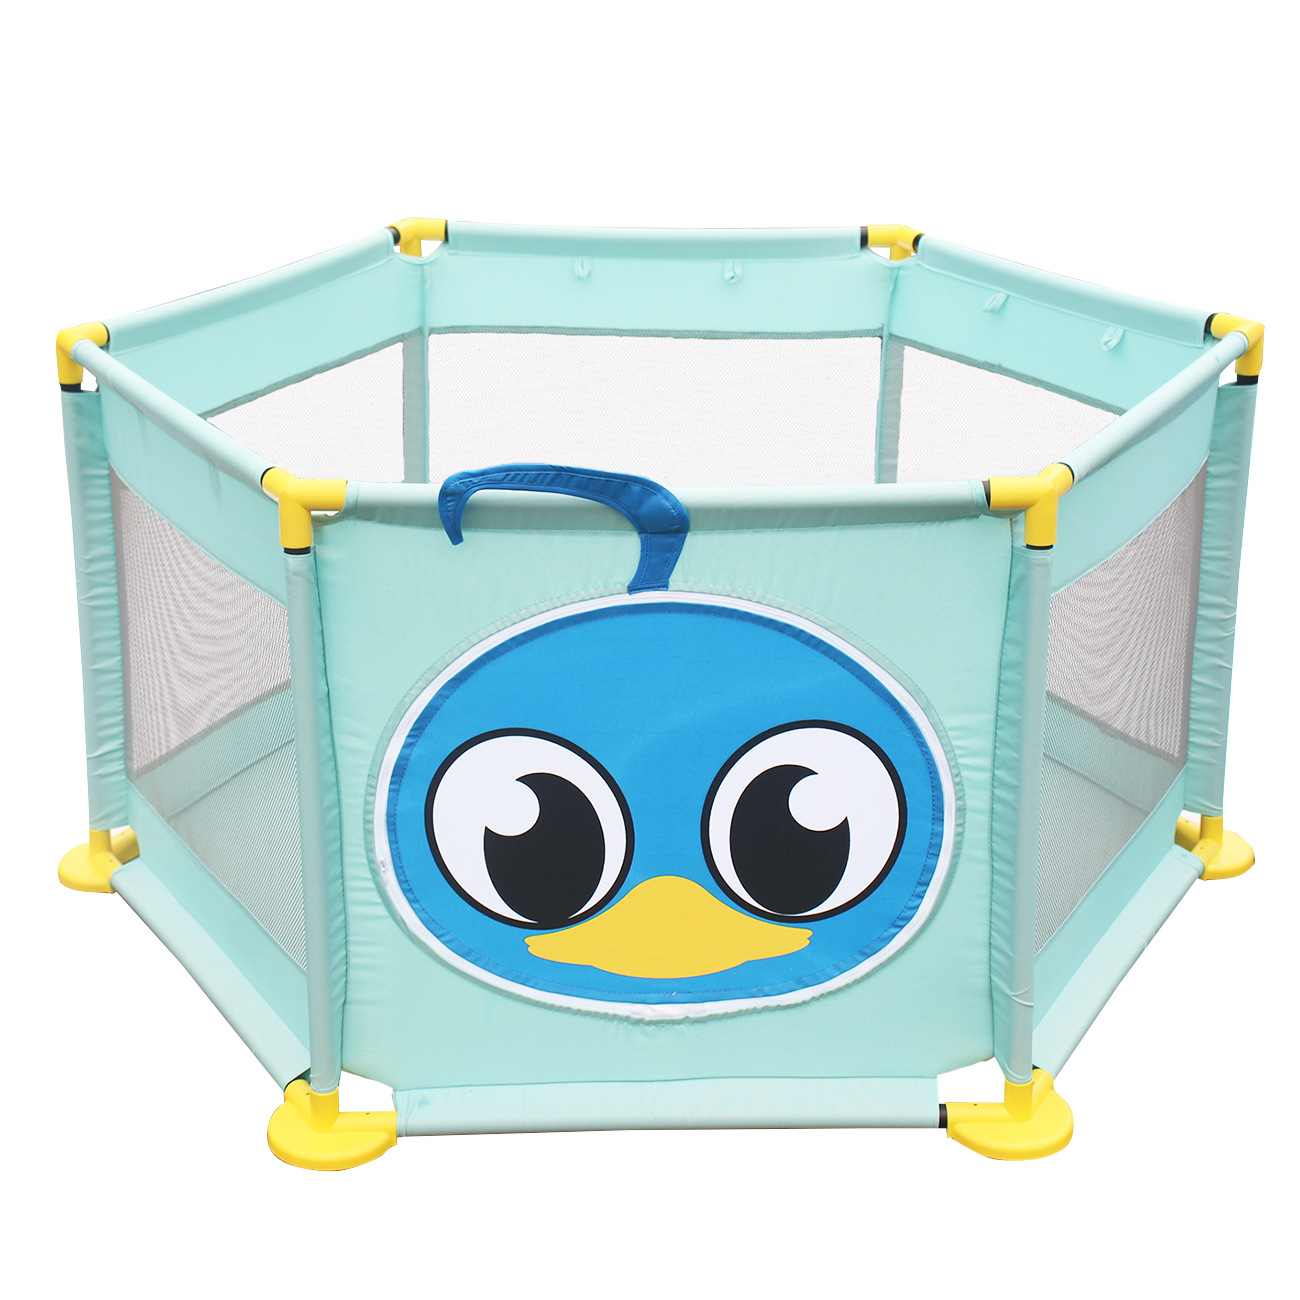 Children Playpen Baby Game Fence Ocean Balls Pool Baby Play Yard Kids Safety Fence Folding Portable Travel Baby Activity Playpen 2018 new baby safety fence guard folding kids playpen game playing pit marine ball pool portable children s game tent baby fence